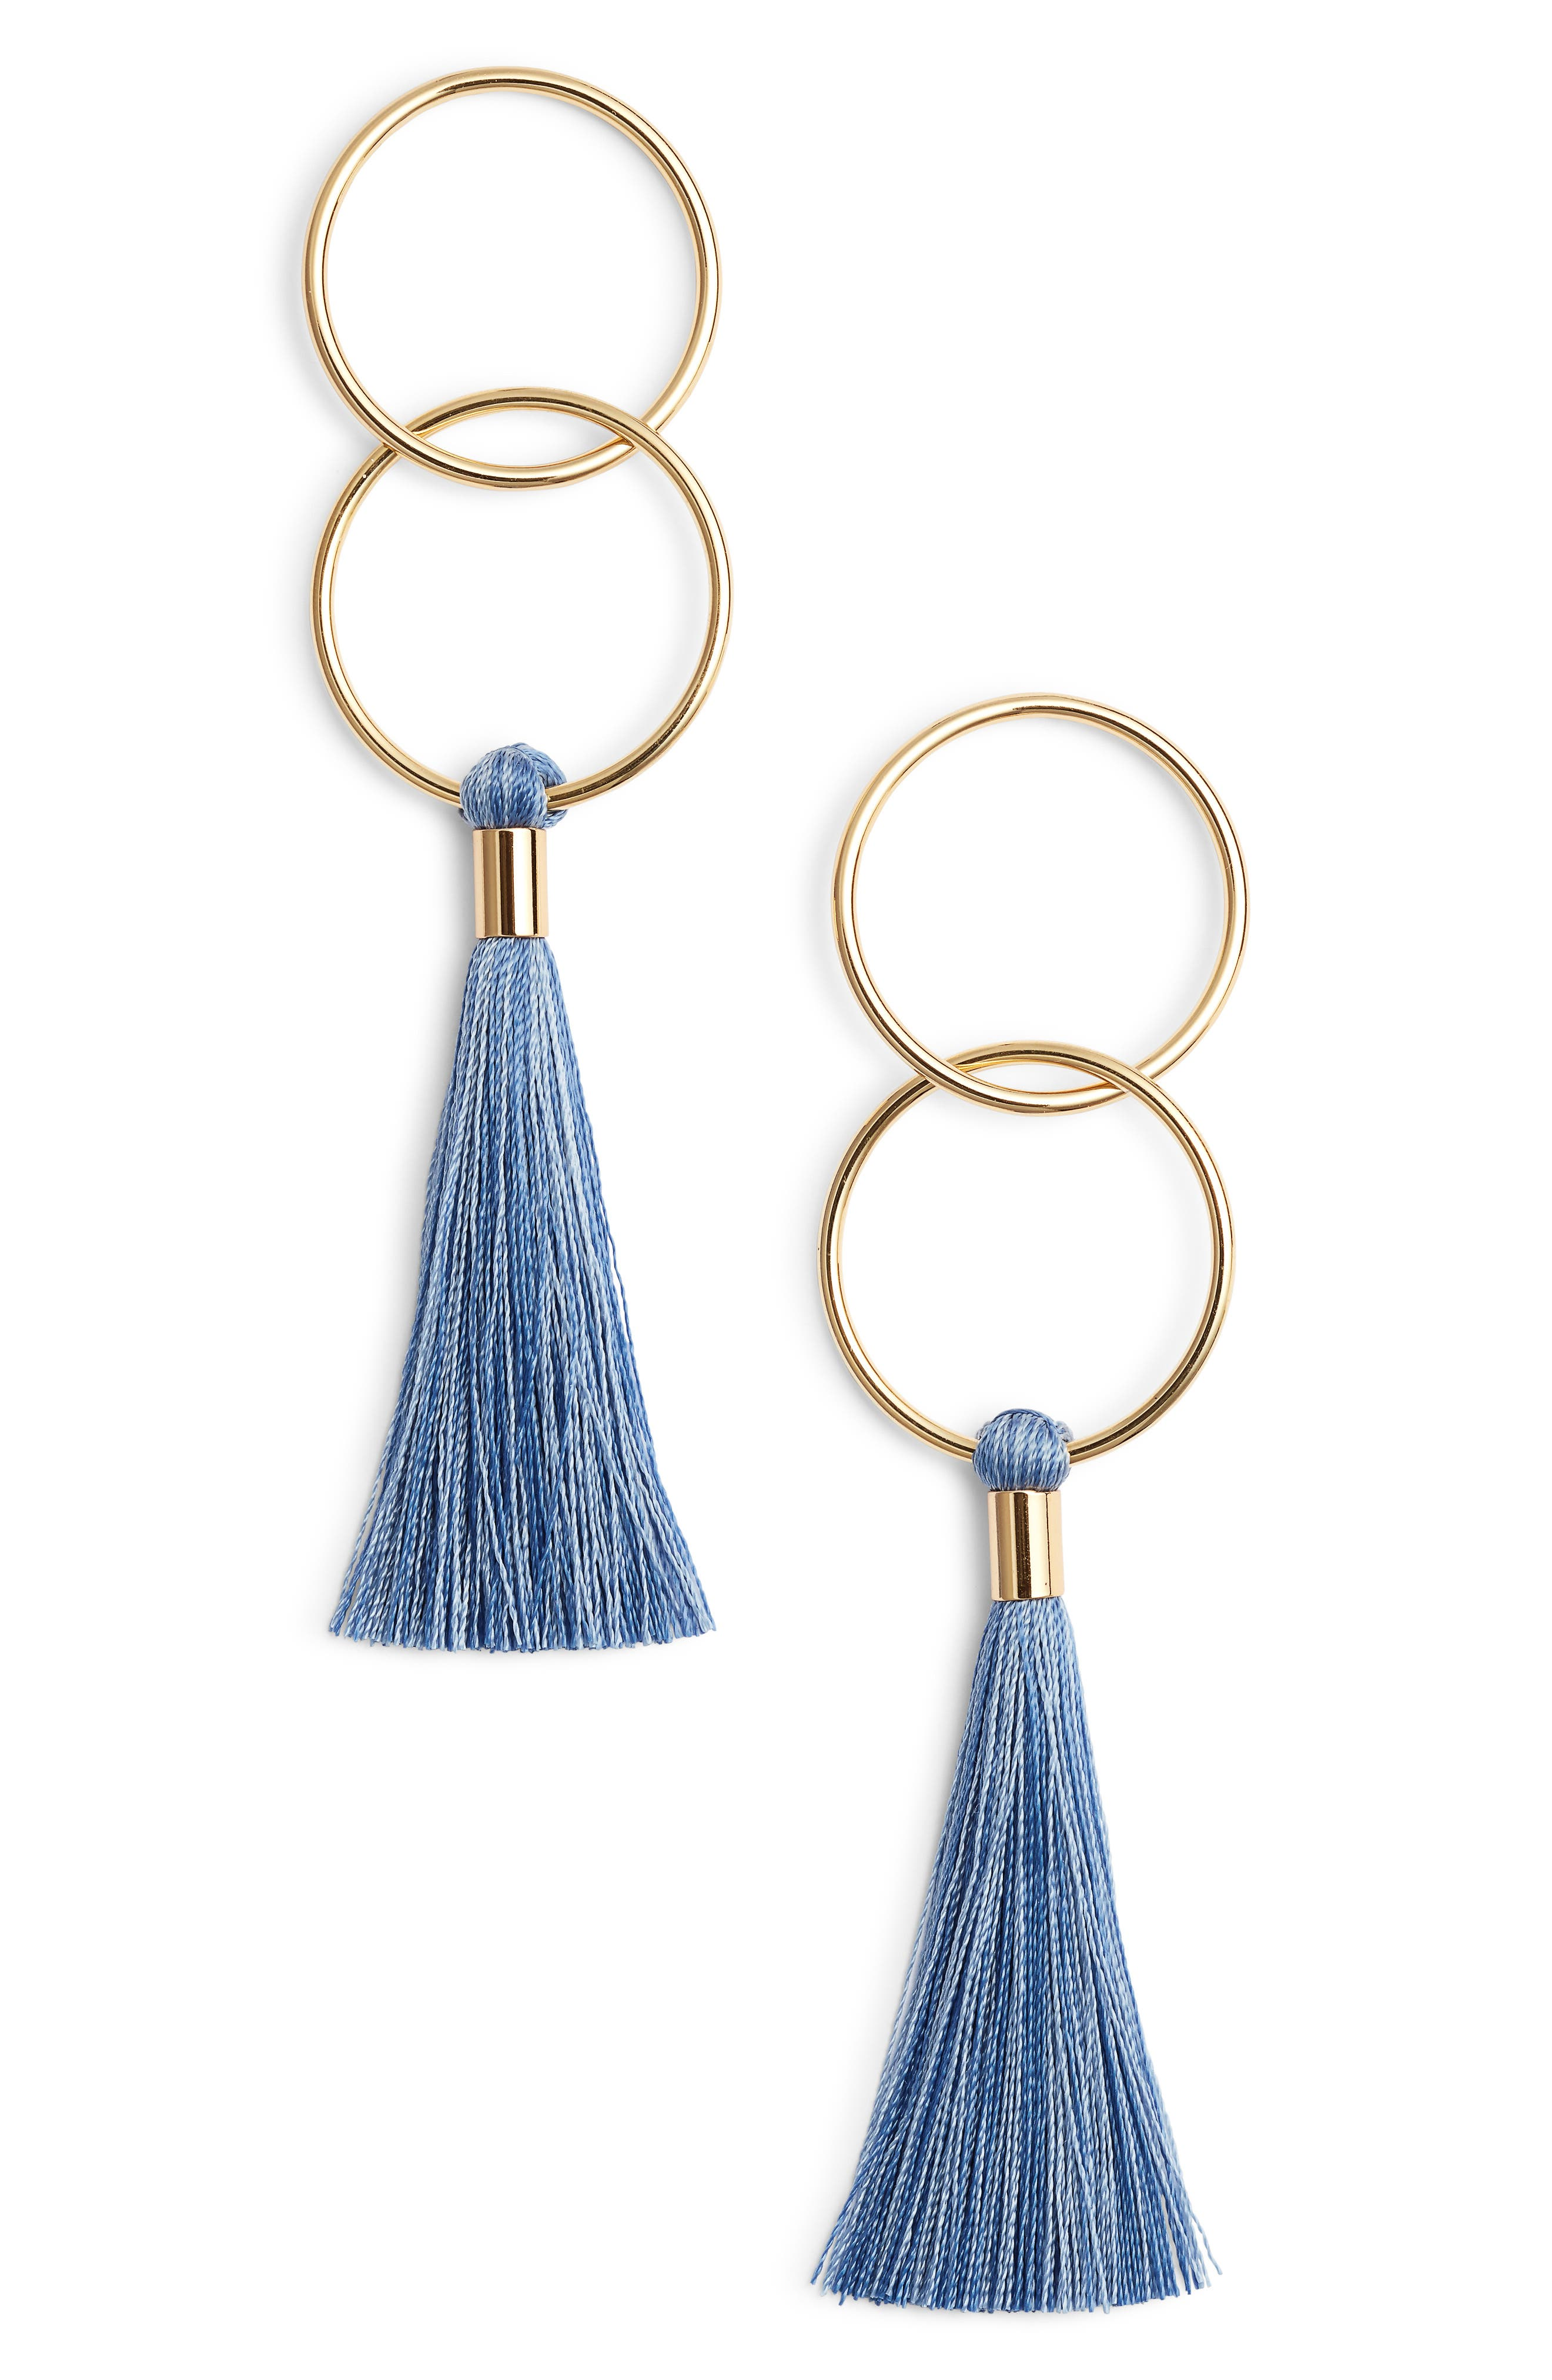 Carmen Tassel Earrings,                         Main,                         color, Mixed Powder Blue/ Gold